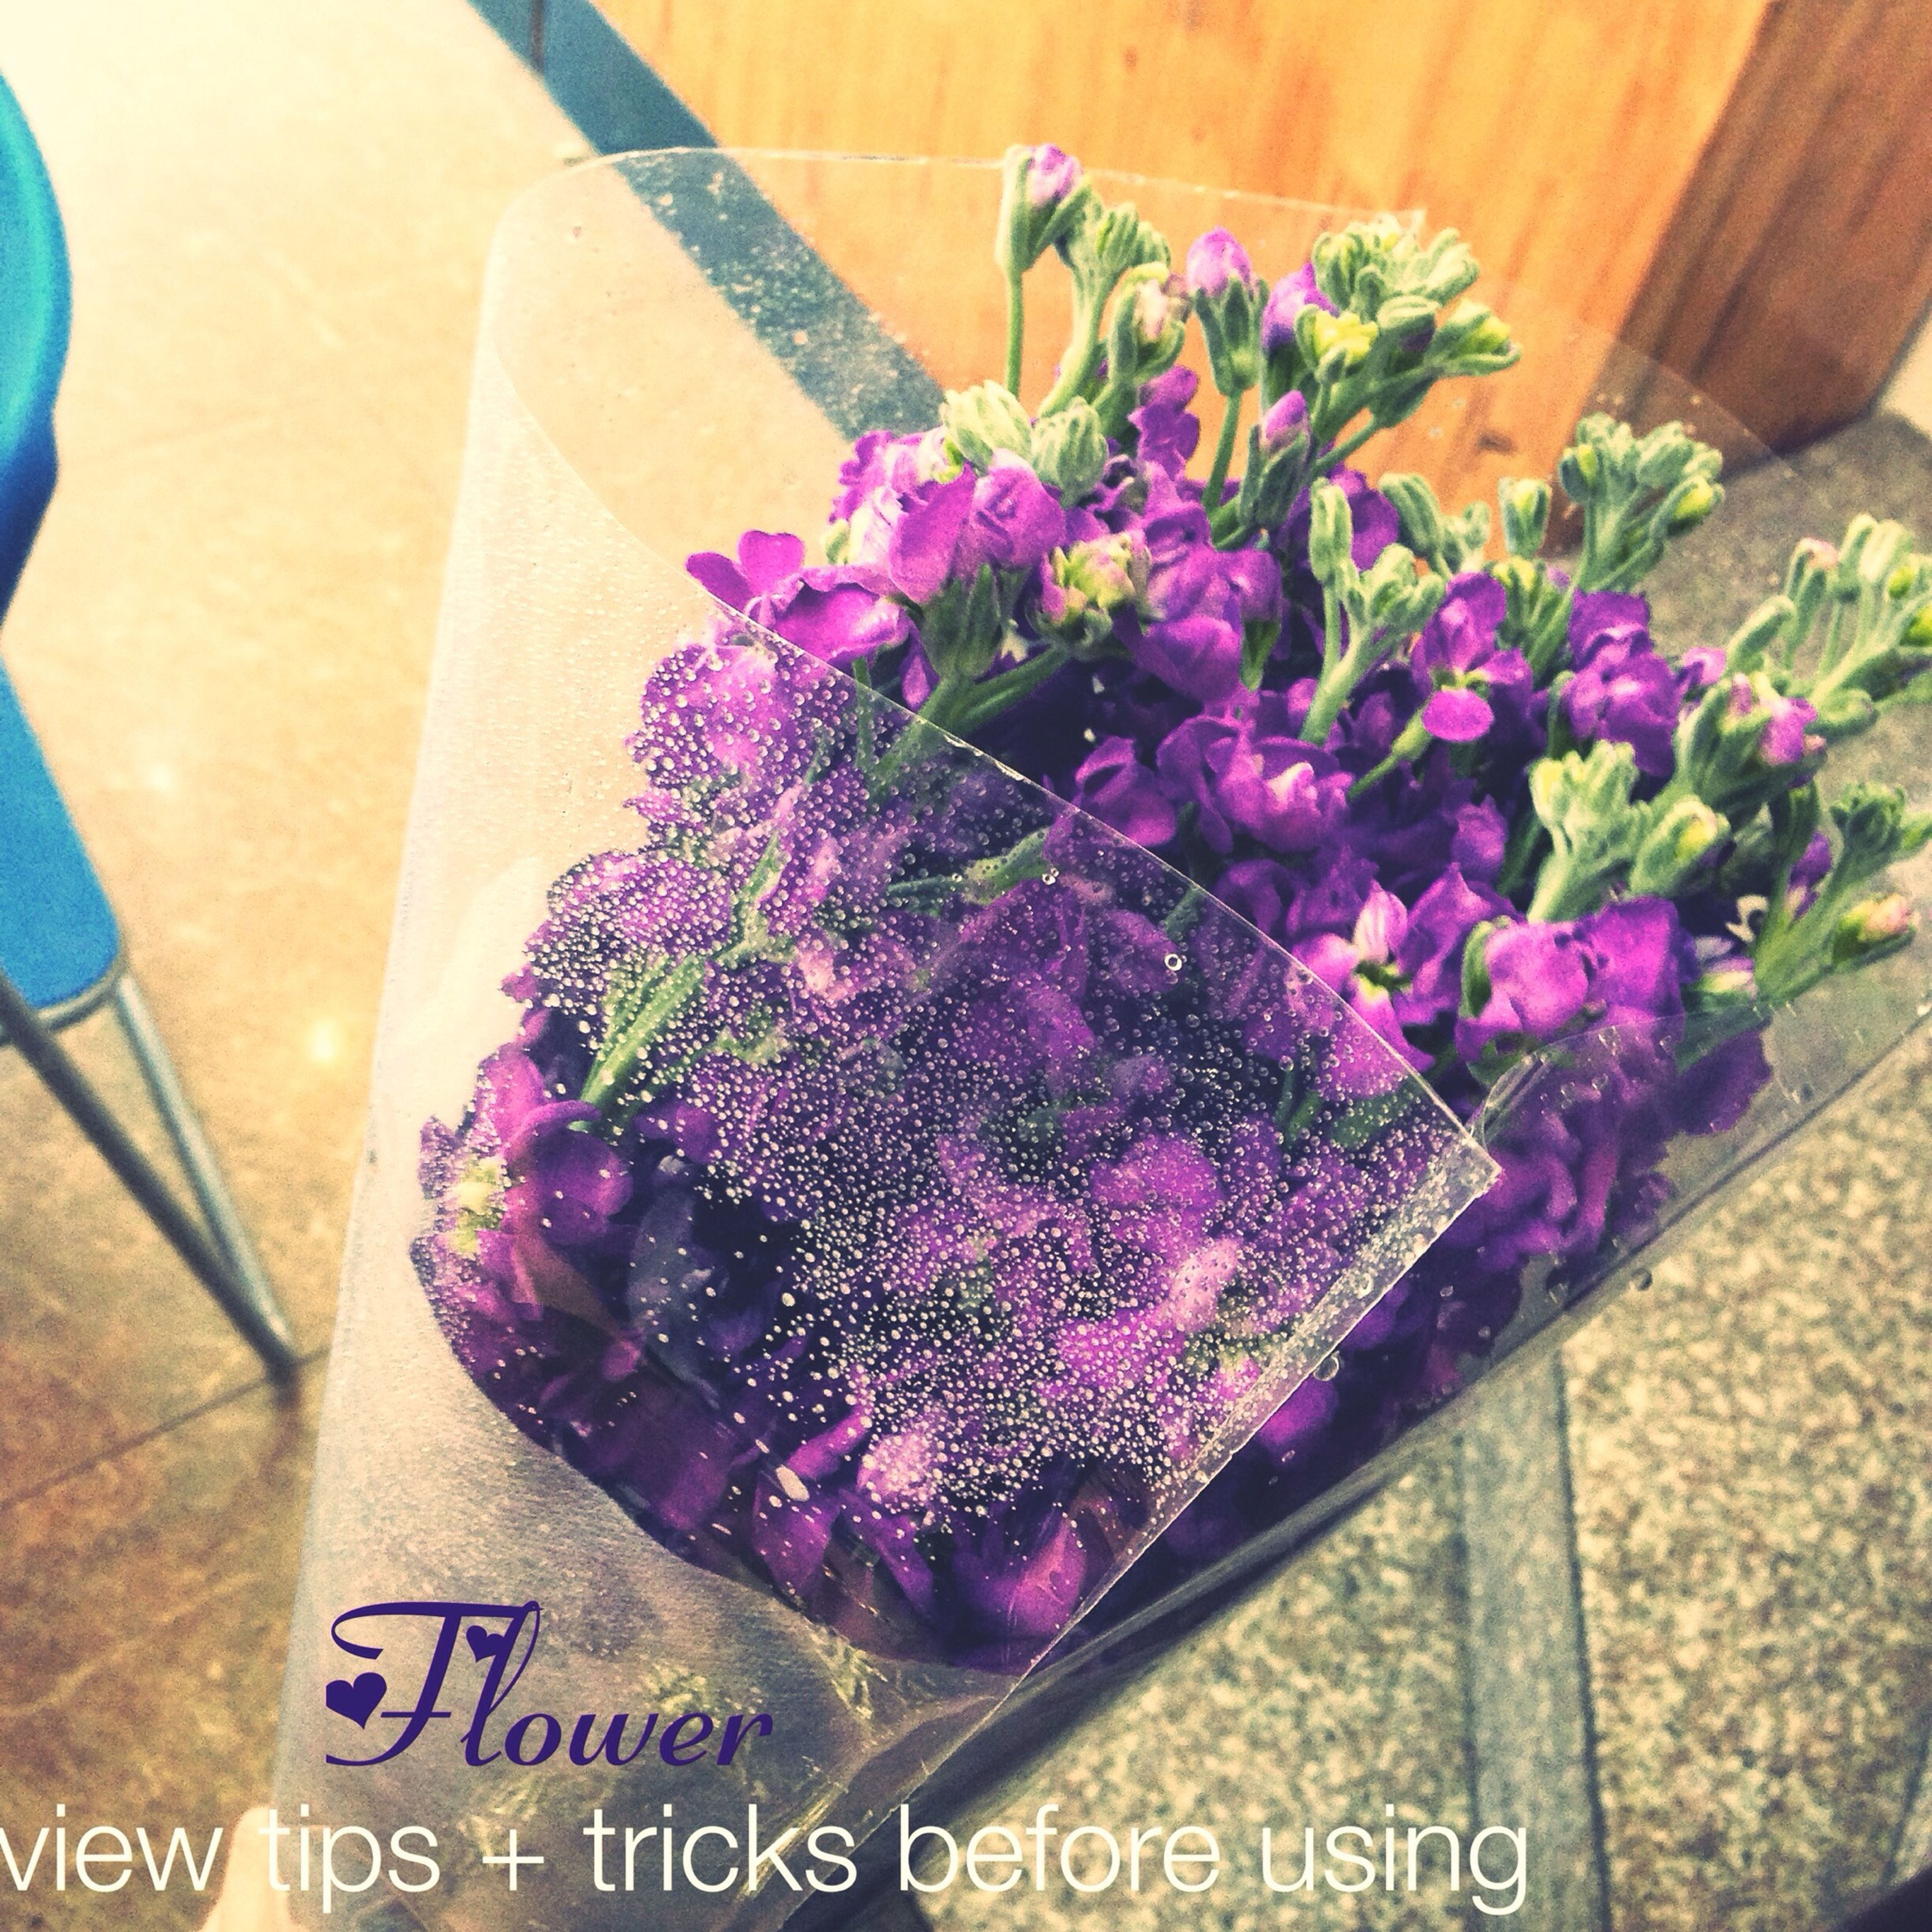 flower, freshness, high angle view, text, variation, pink color, indoors, purple, fragility, close-up, western script, no people, still life, table, plant, potted plant, petal, decoration, growth, day